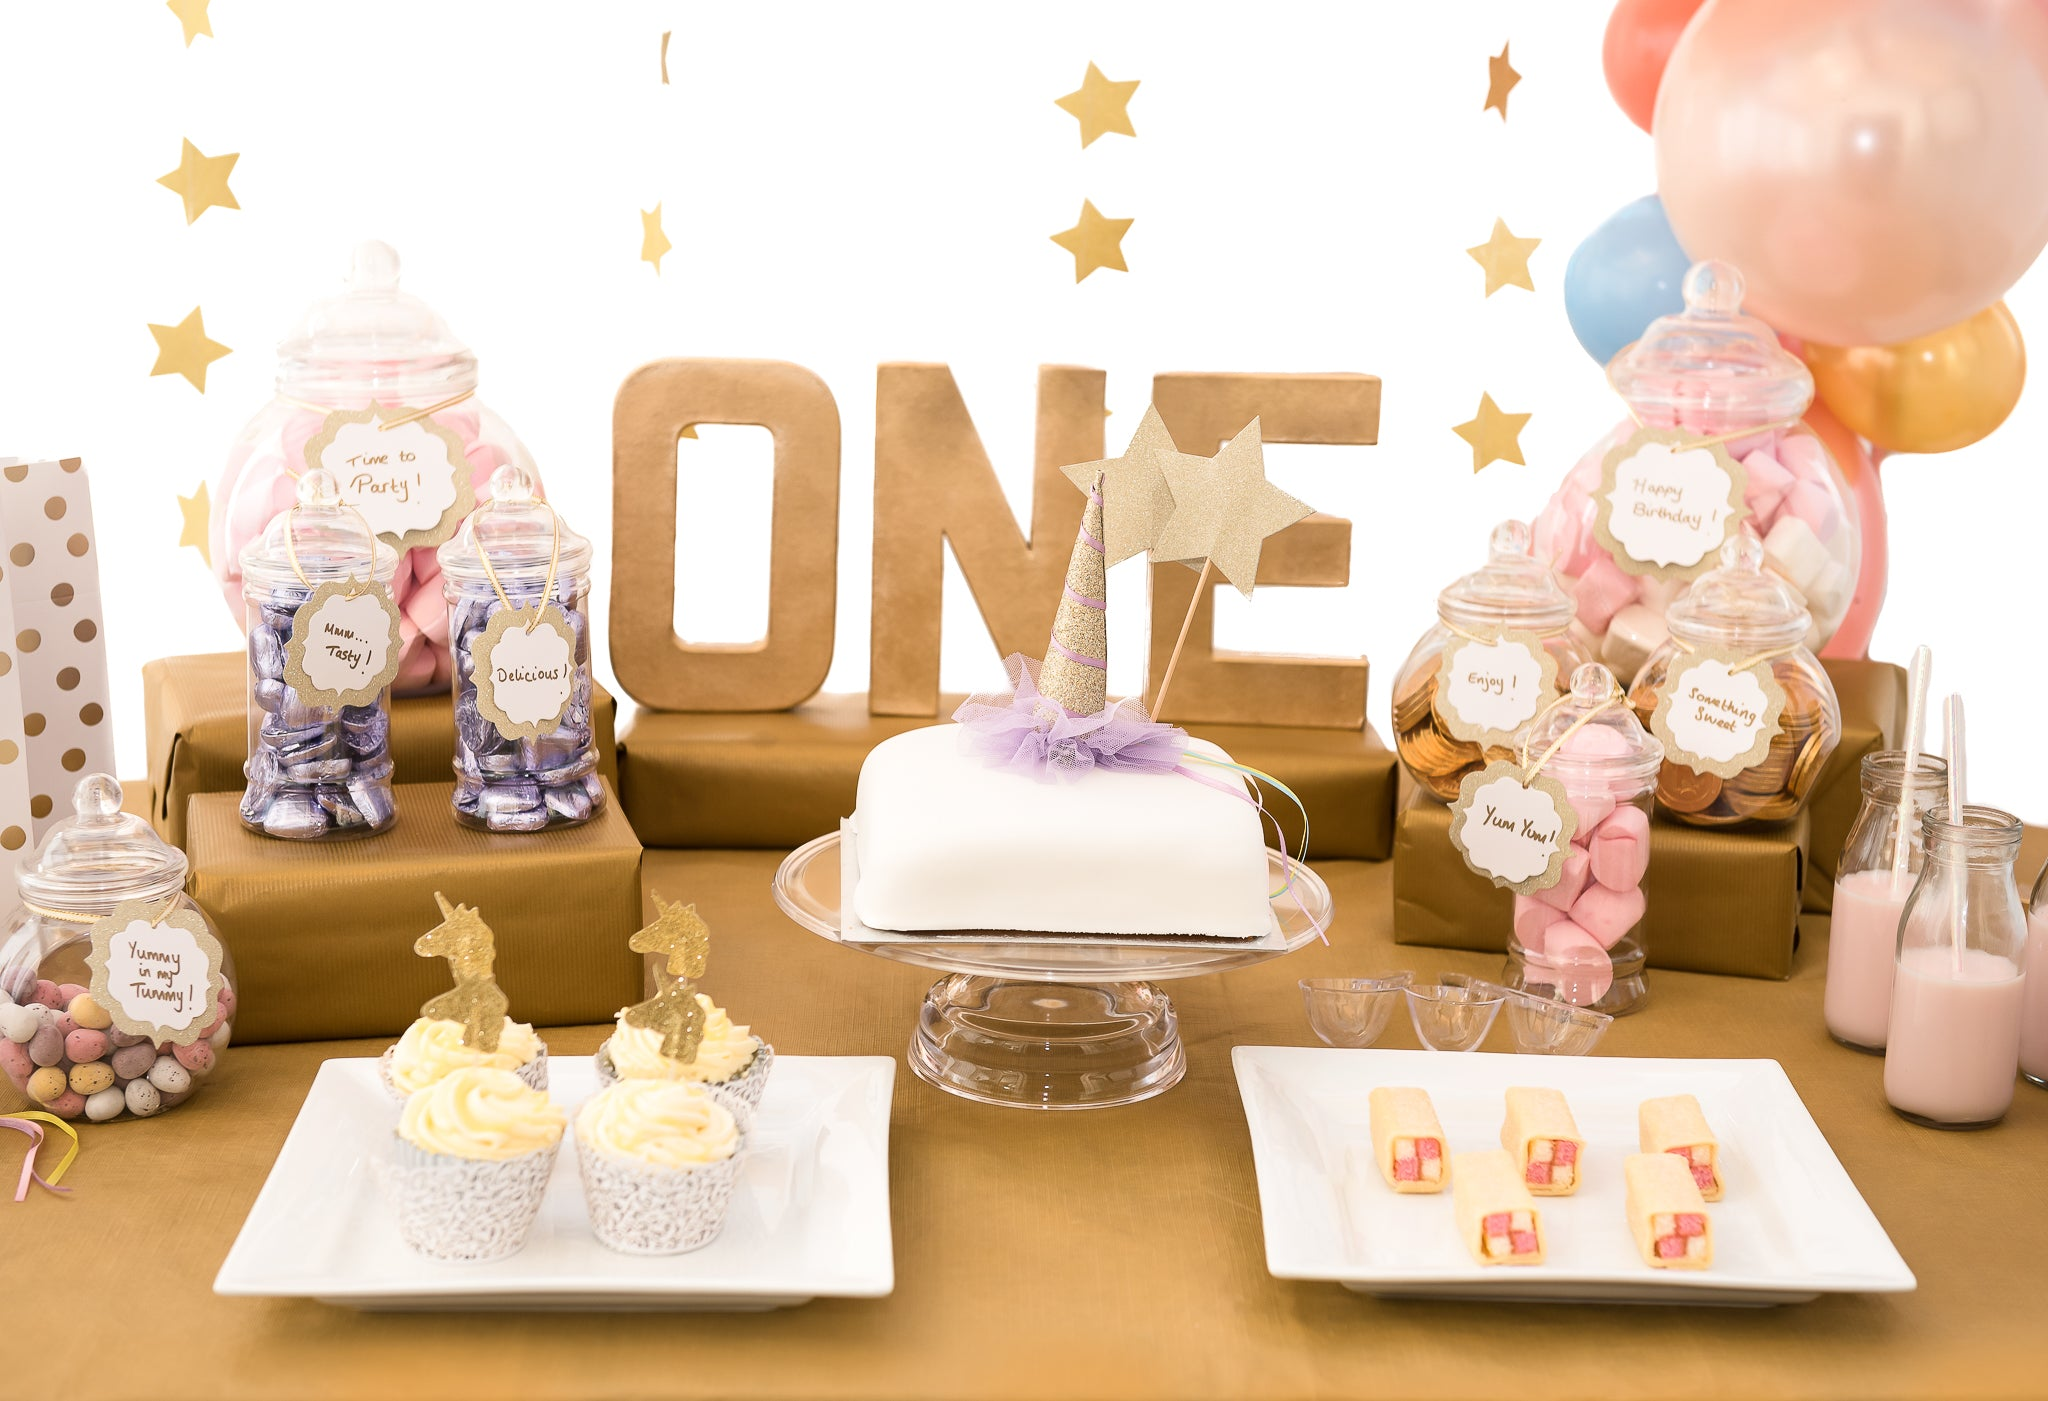 Unicorn Cake Table WrappedinRibbon